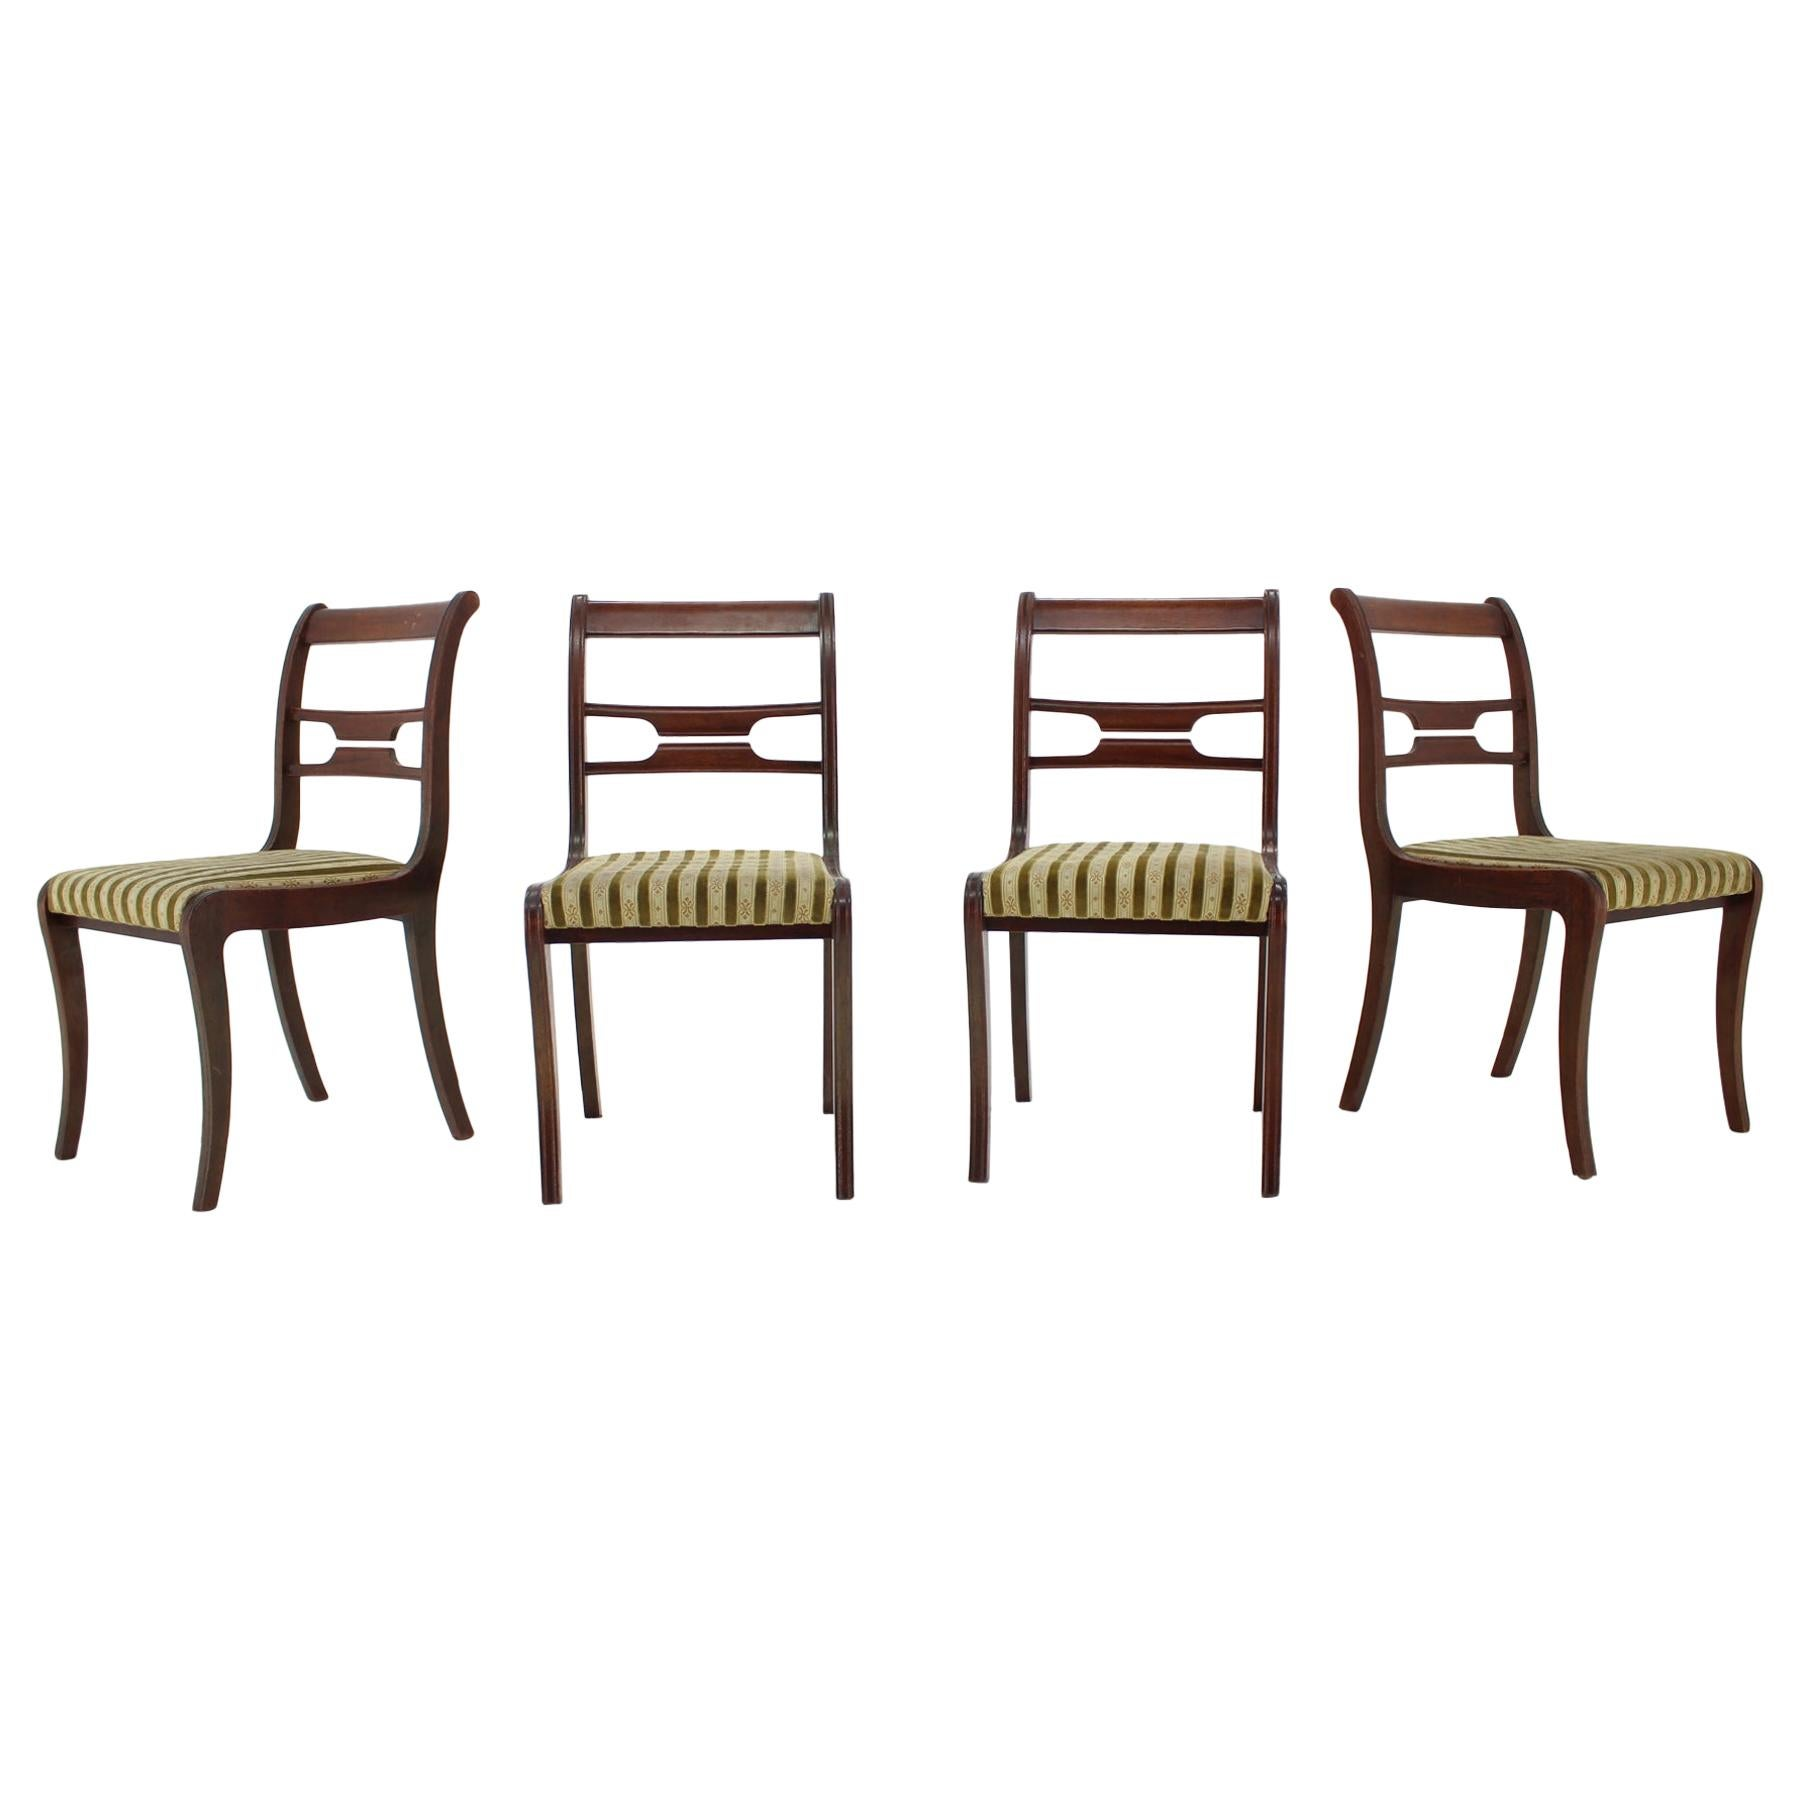 1940s Set of Four Art Deco Dining Chairs